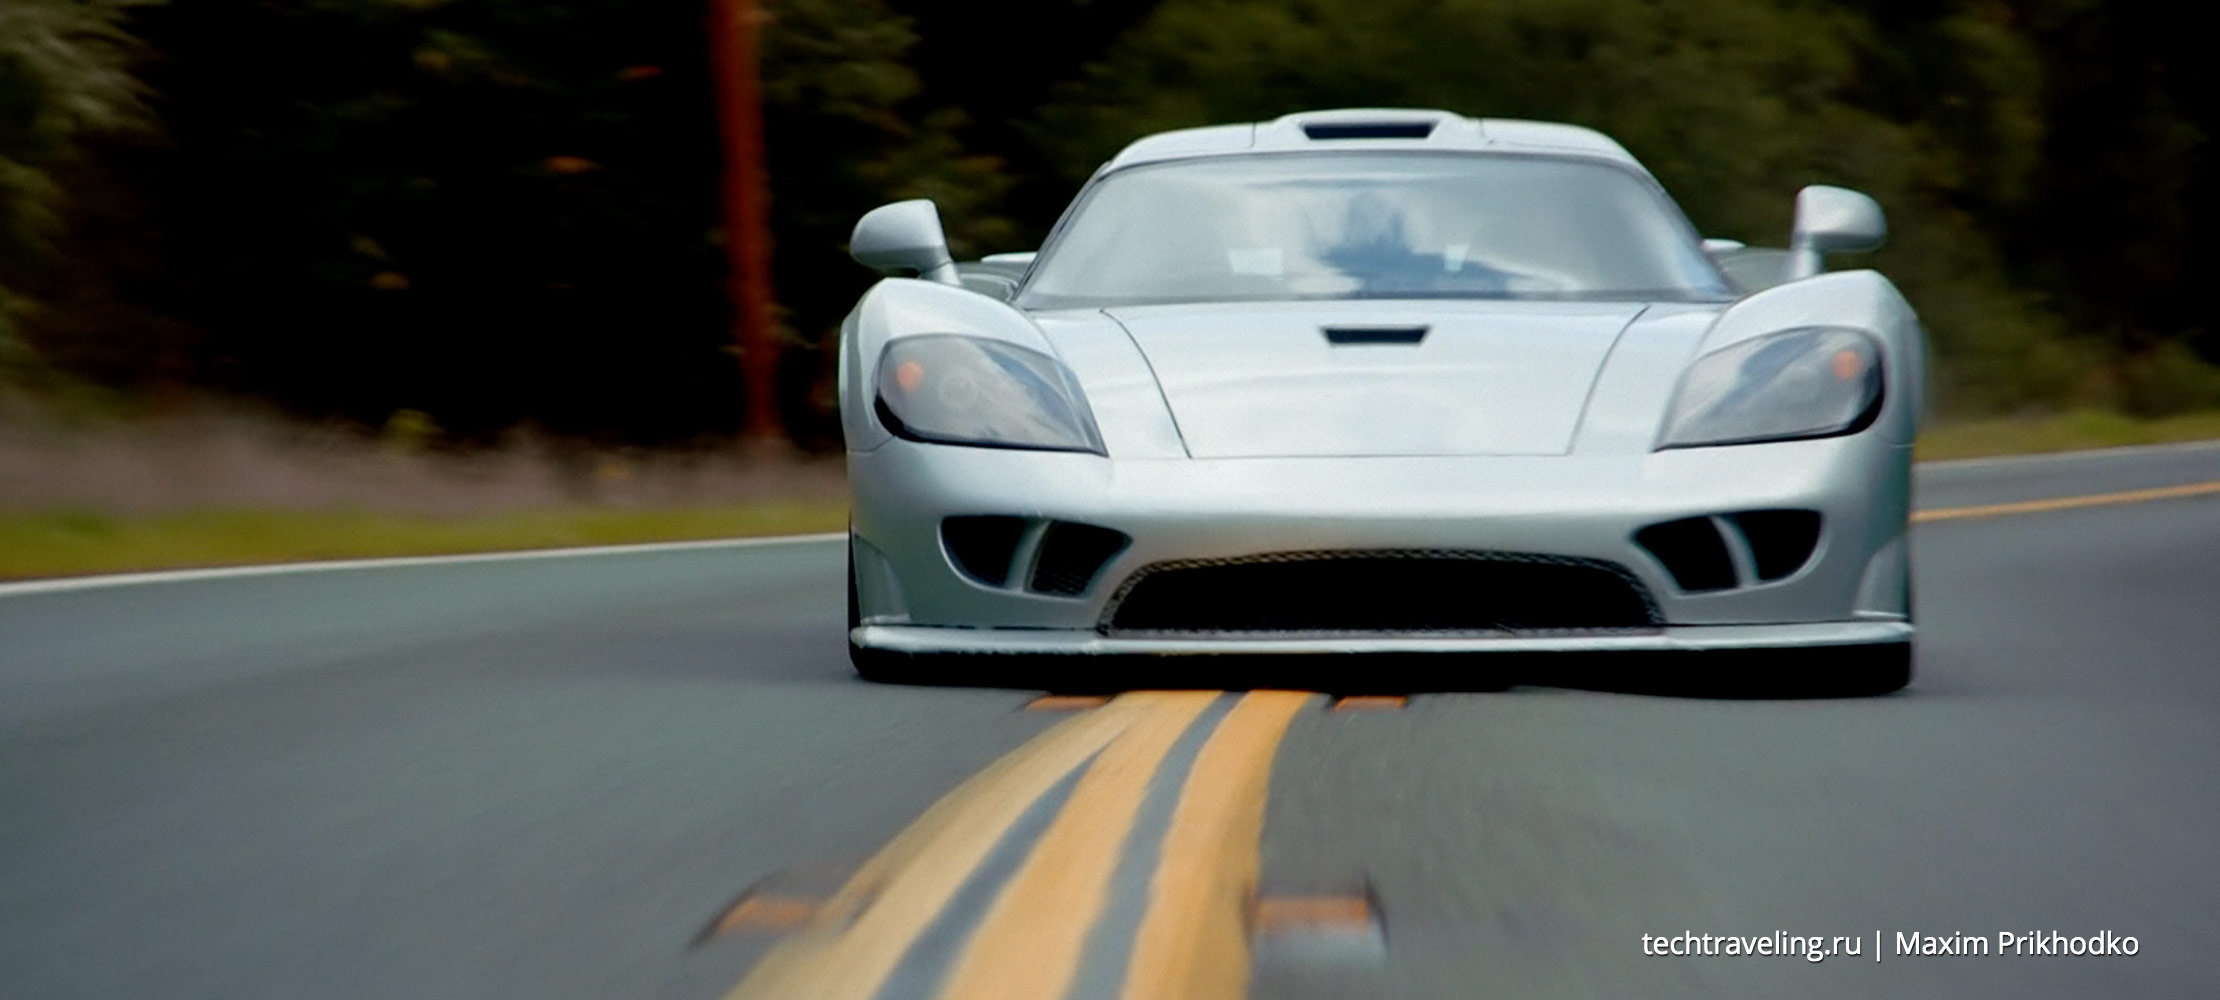 Saleen S7 Need For Speed